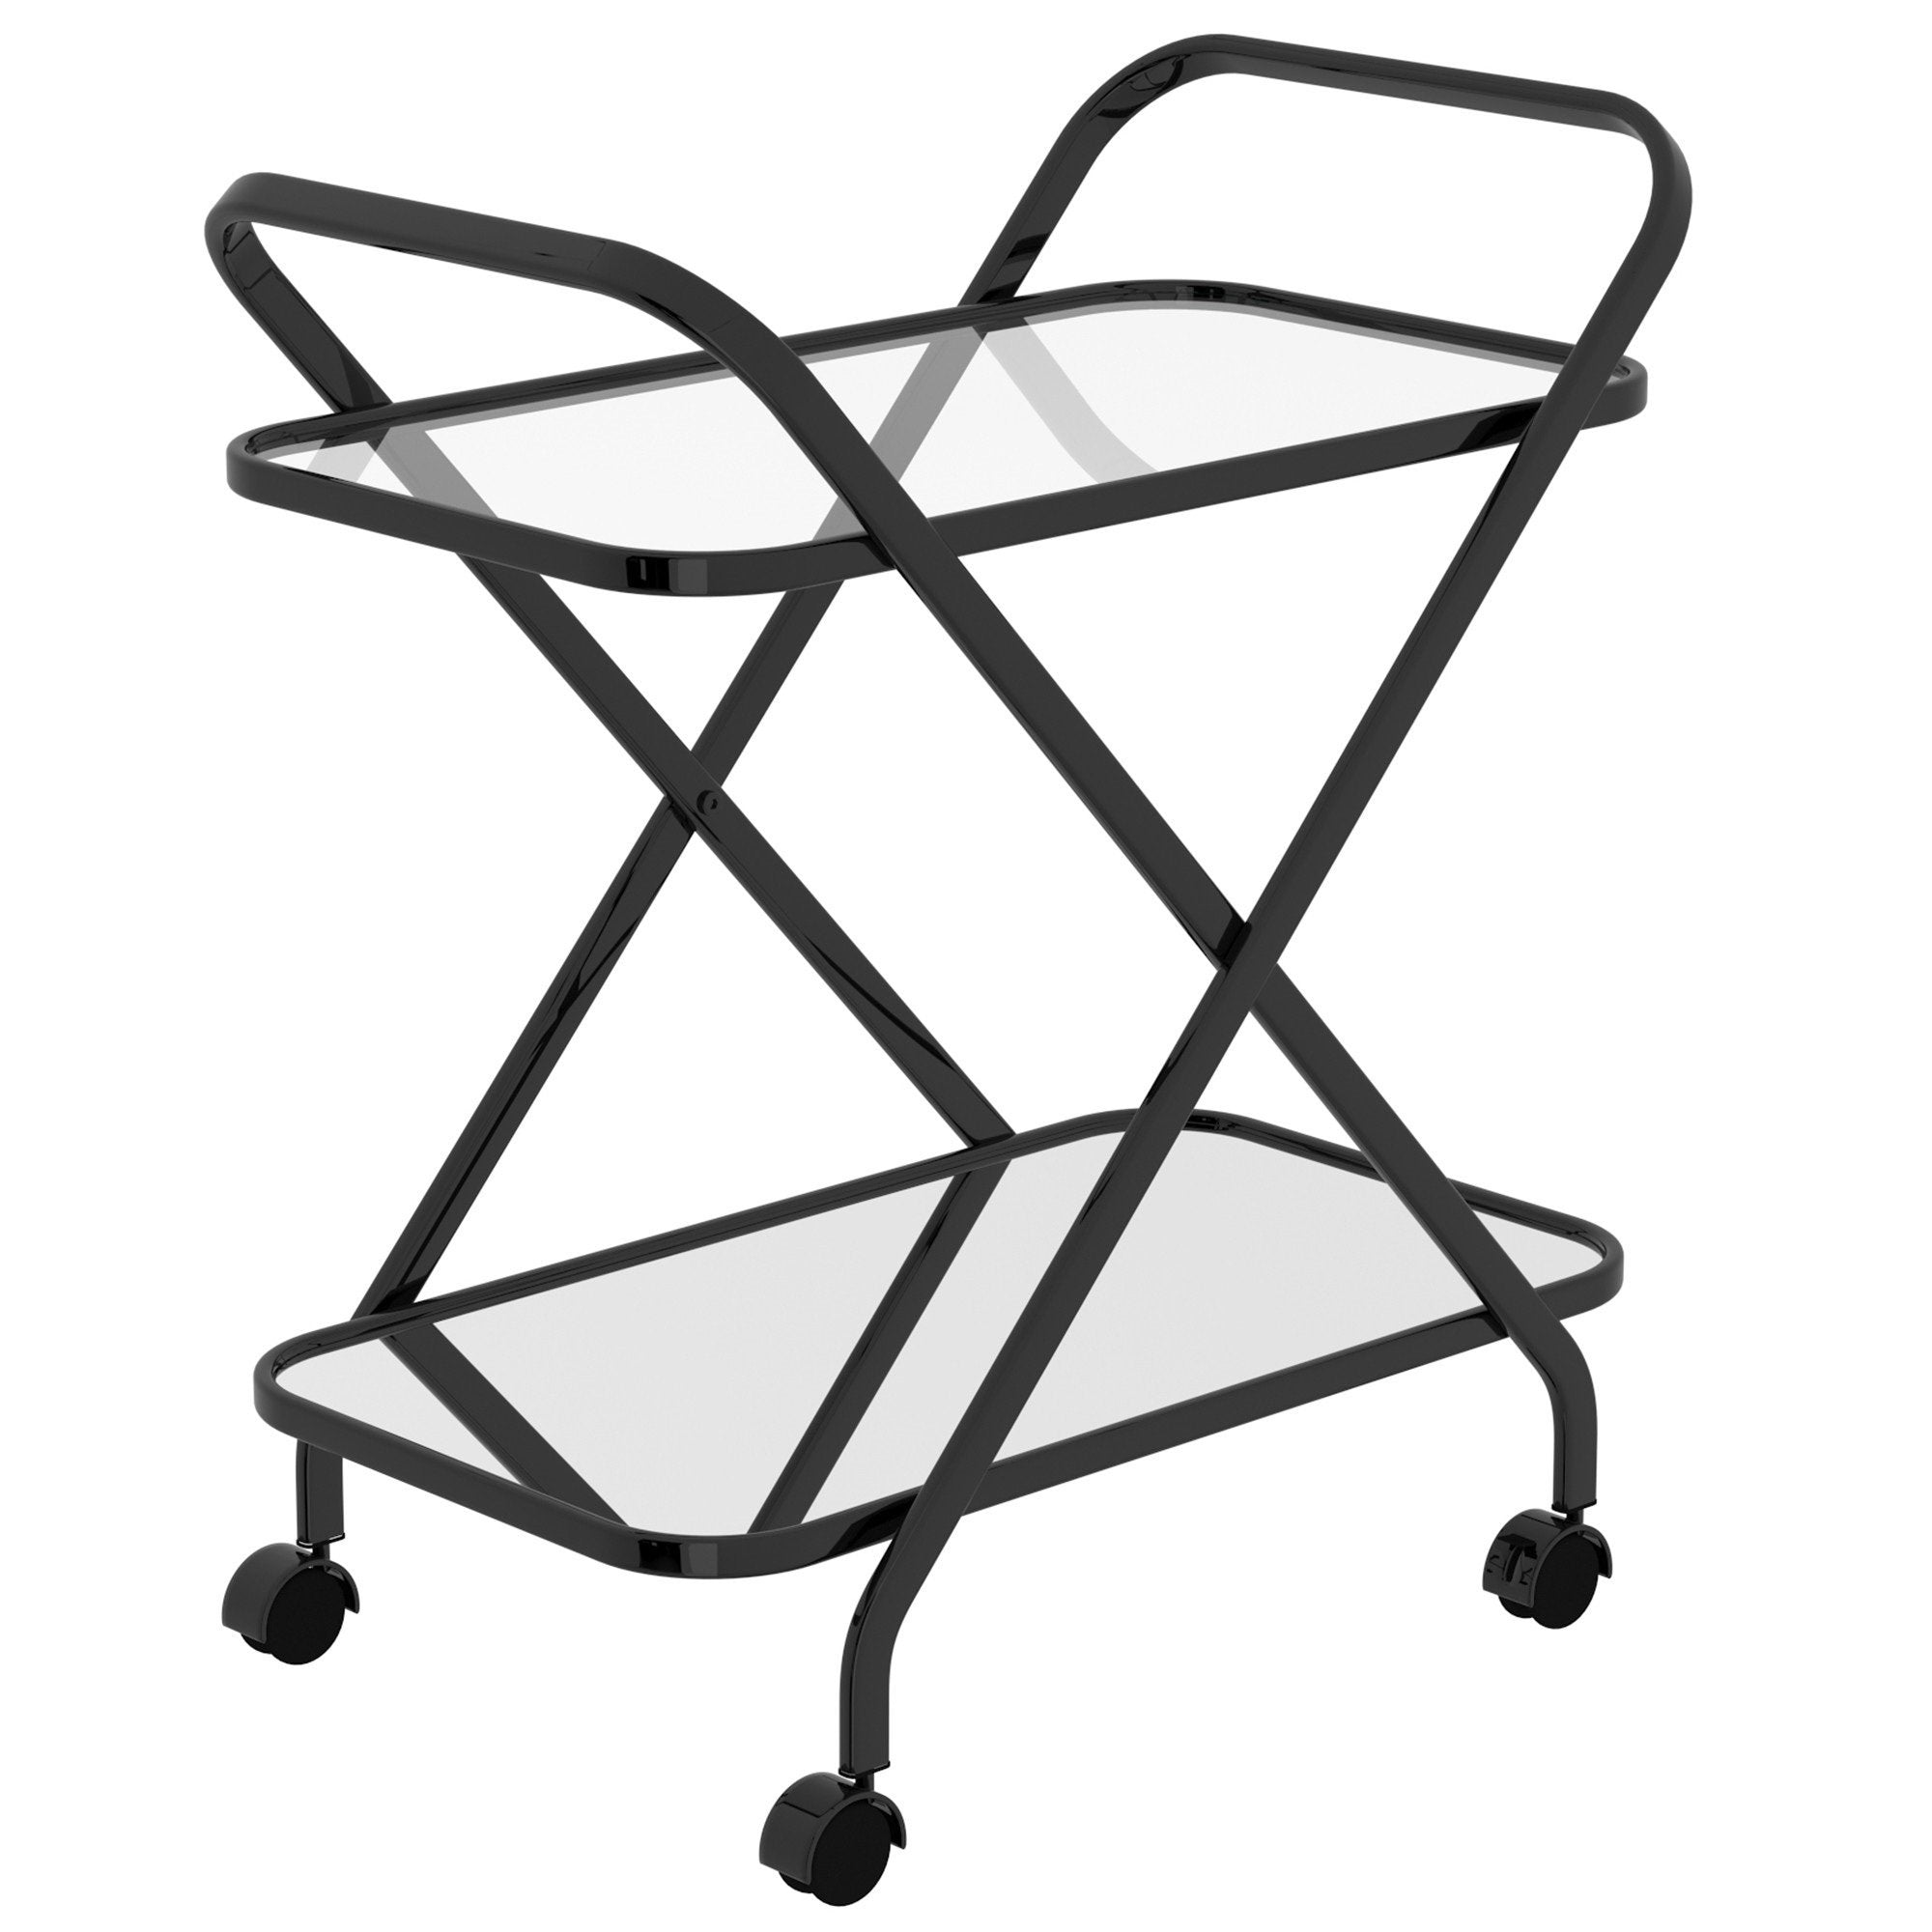 Oriso 2-Tier Bar Cart -Black